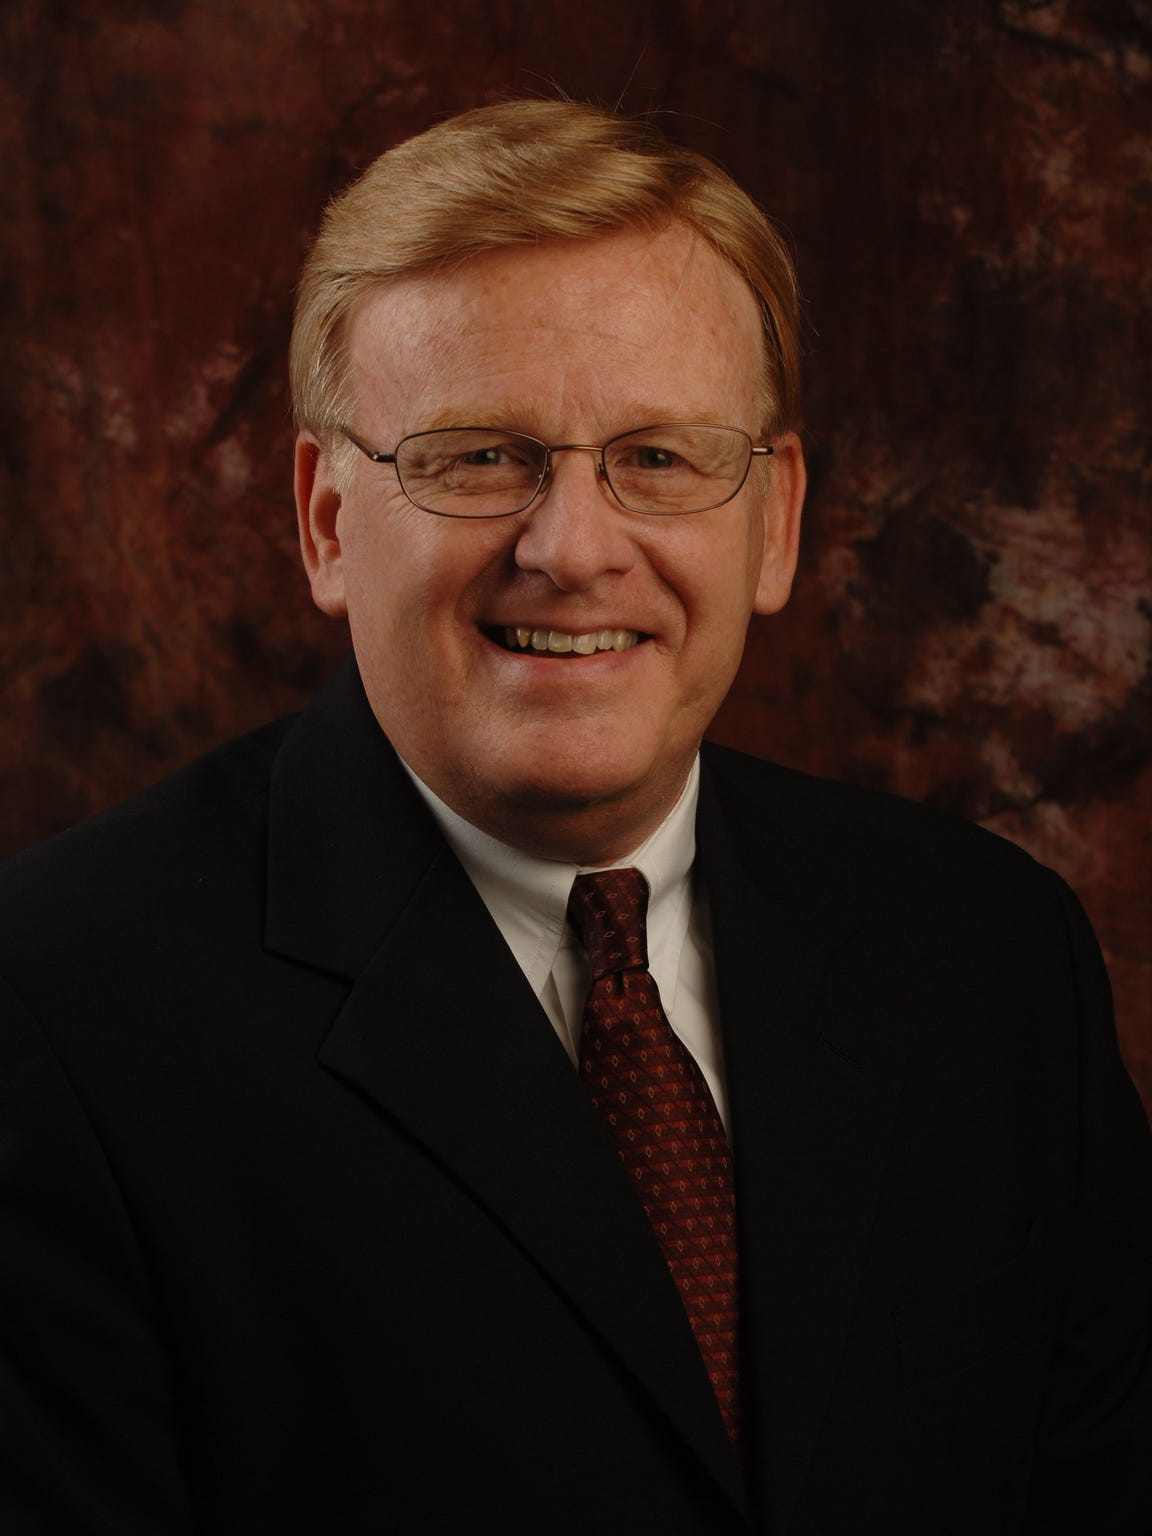 Ken McClure Is the vice president for administrative